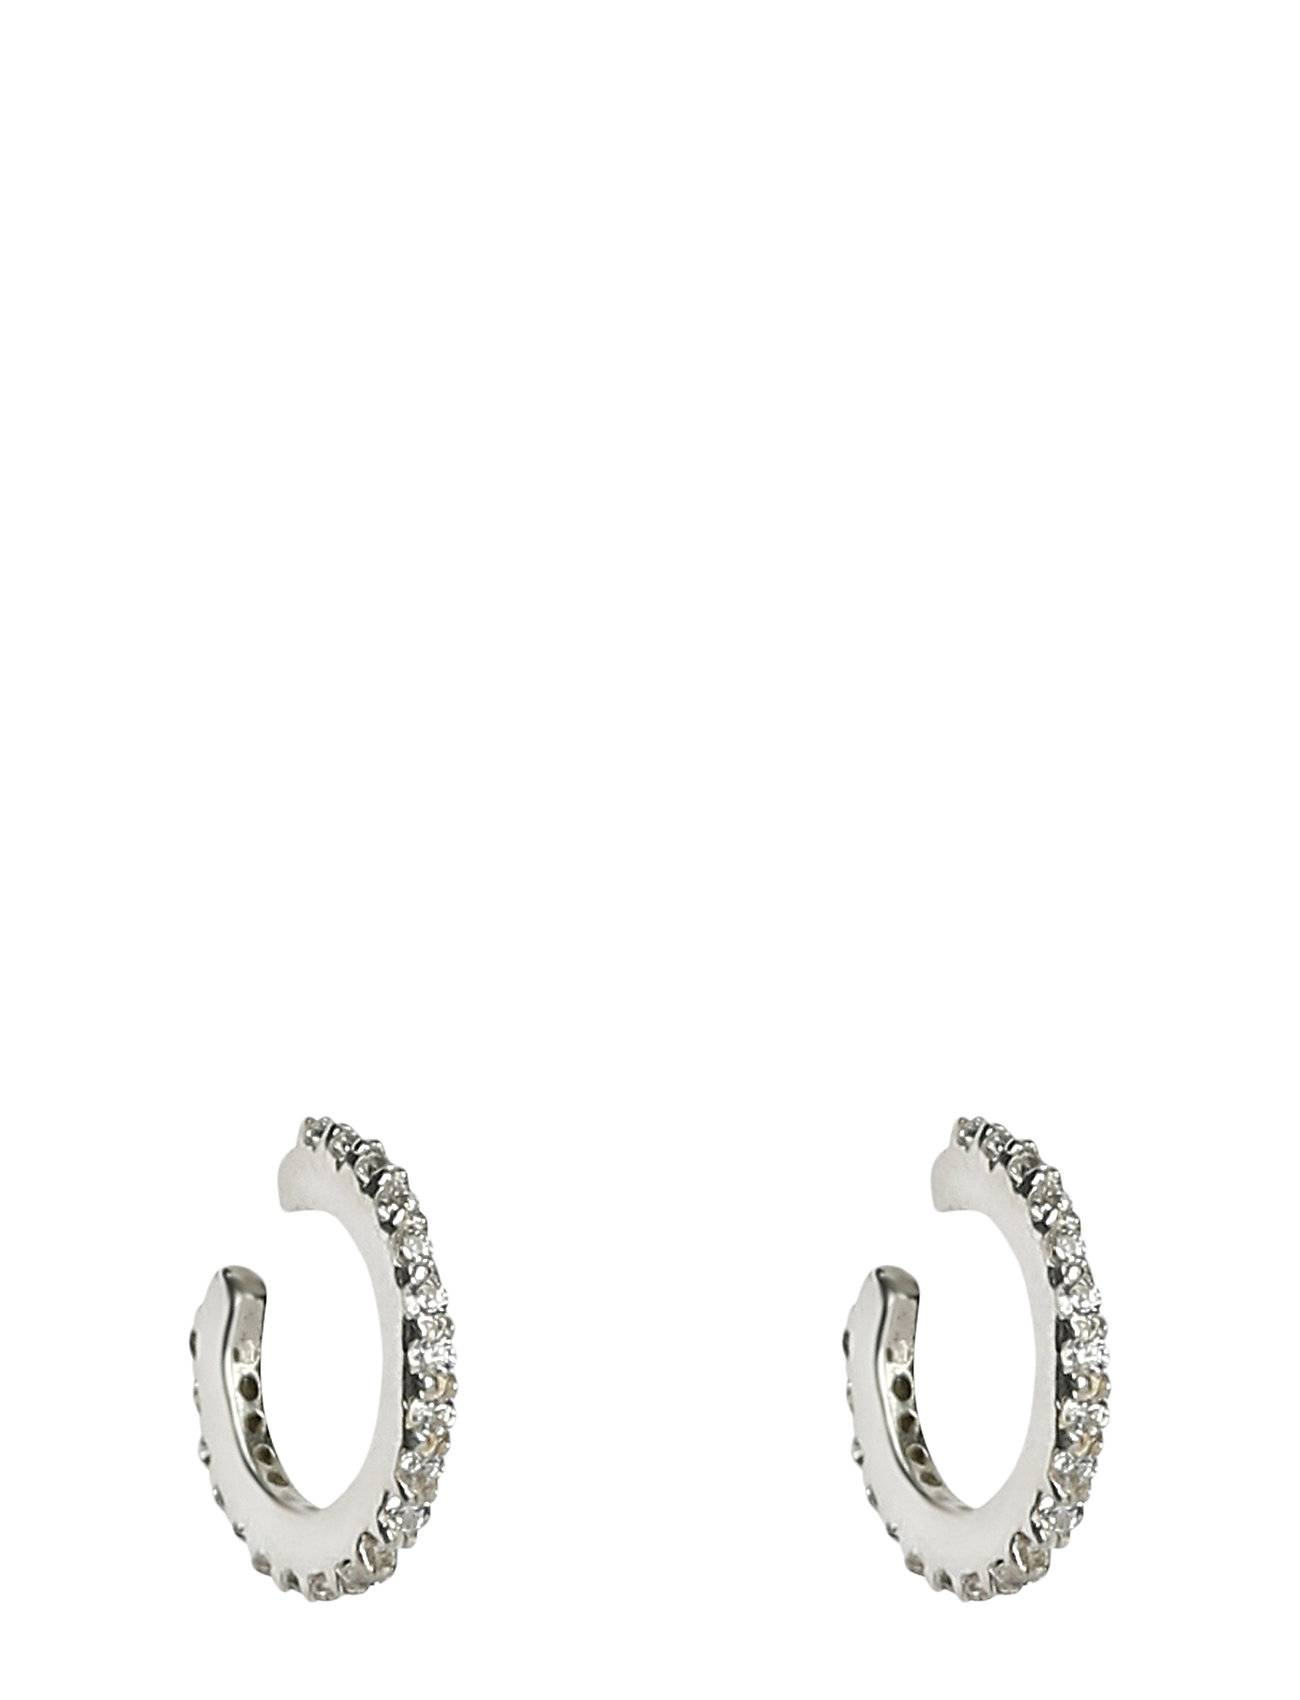 Syster P Mini Cuff Earrings Silver Accessories Jewellery Earrings Hoops Hopea Syster P